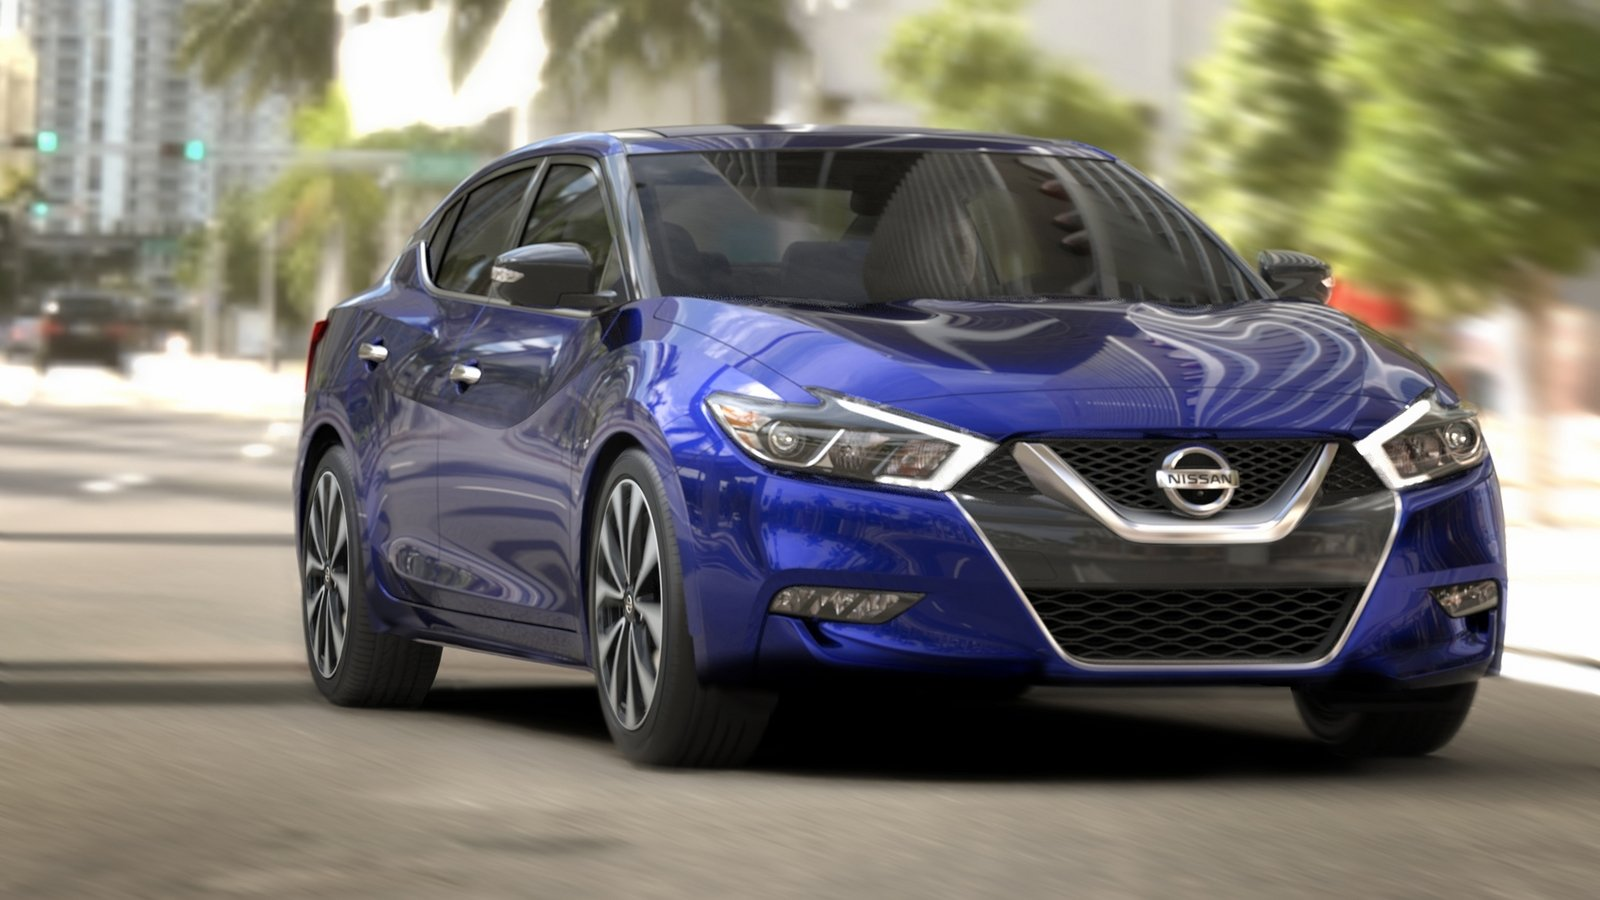 http://pictures.topspeed.com/IMG/crop/201504/2016-nissan-maxima-28_1600x0w.jpg